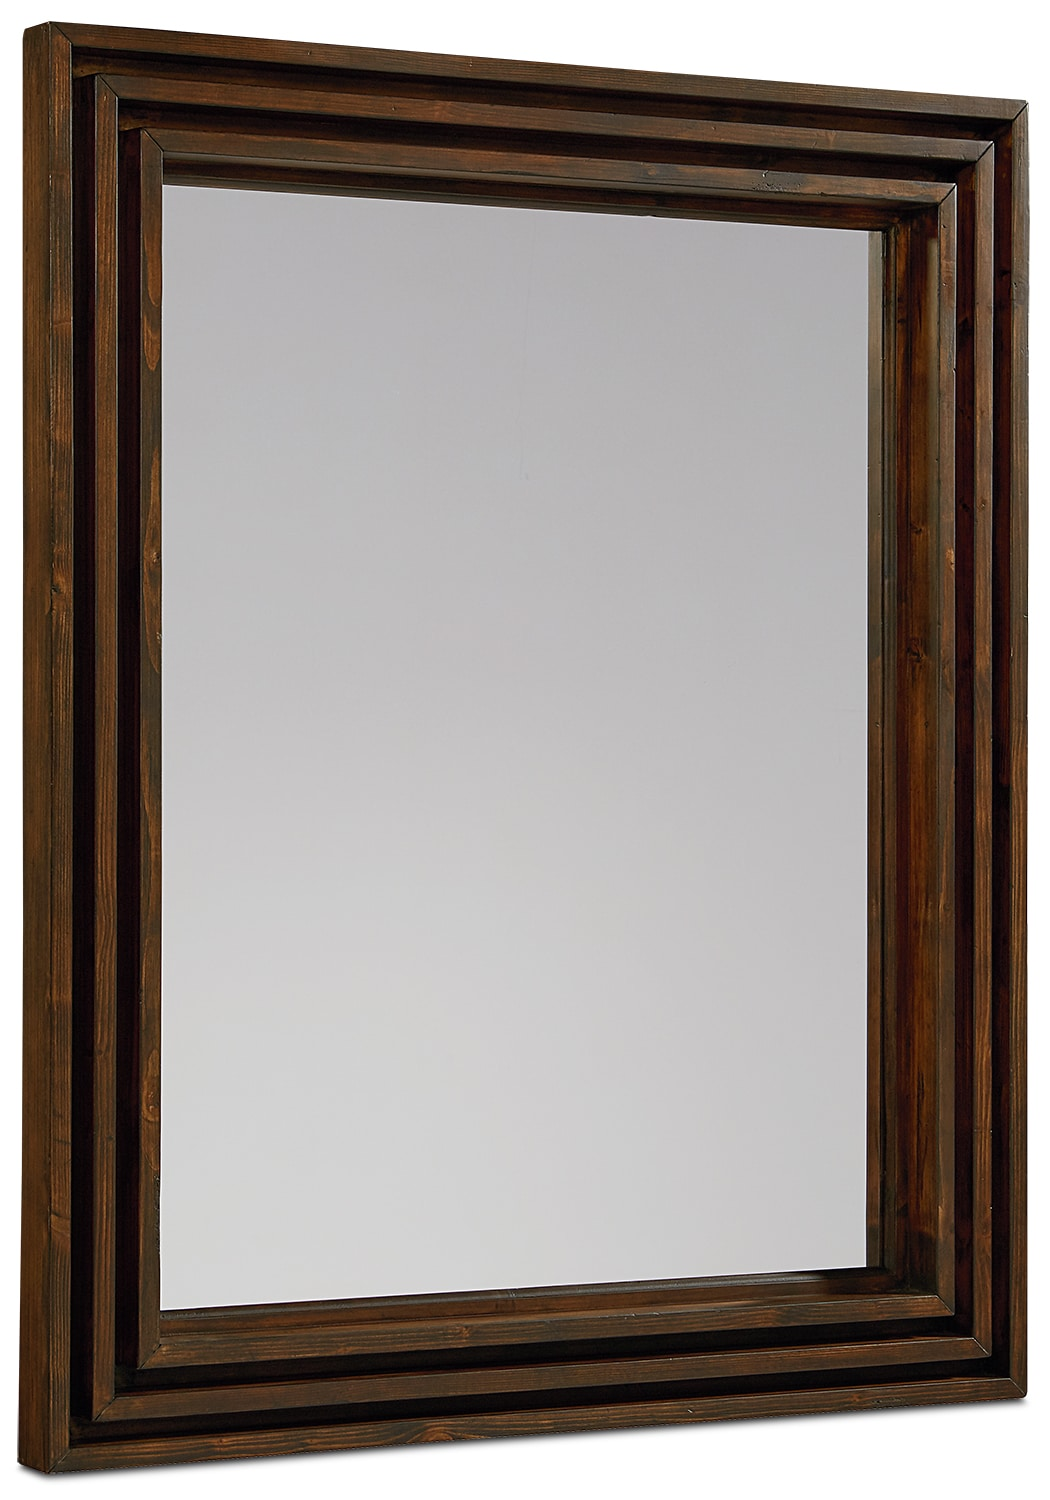 Bedroom Furniture - Stacked Slat Mirror